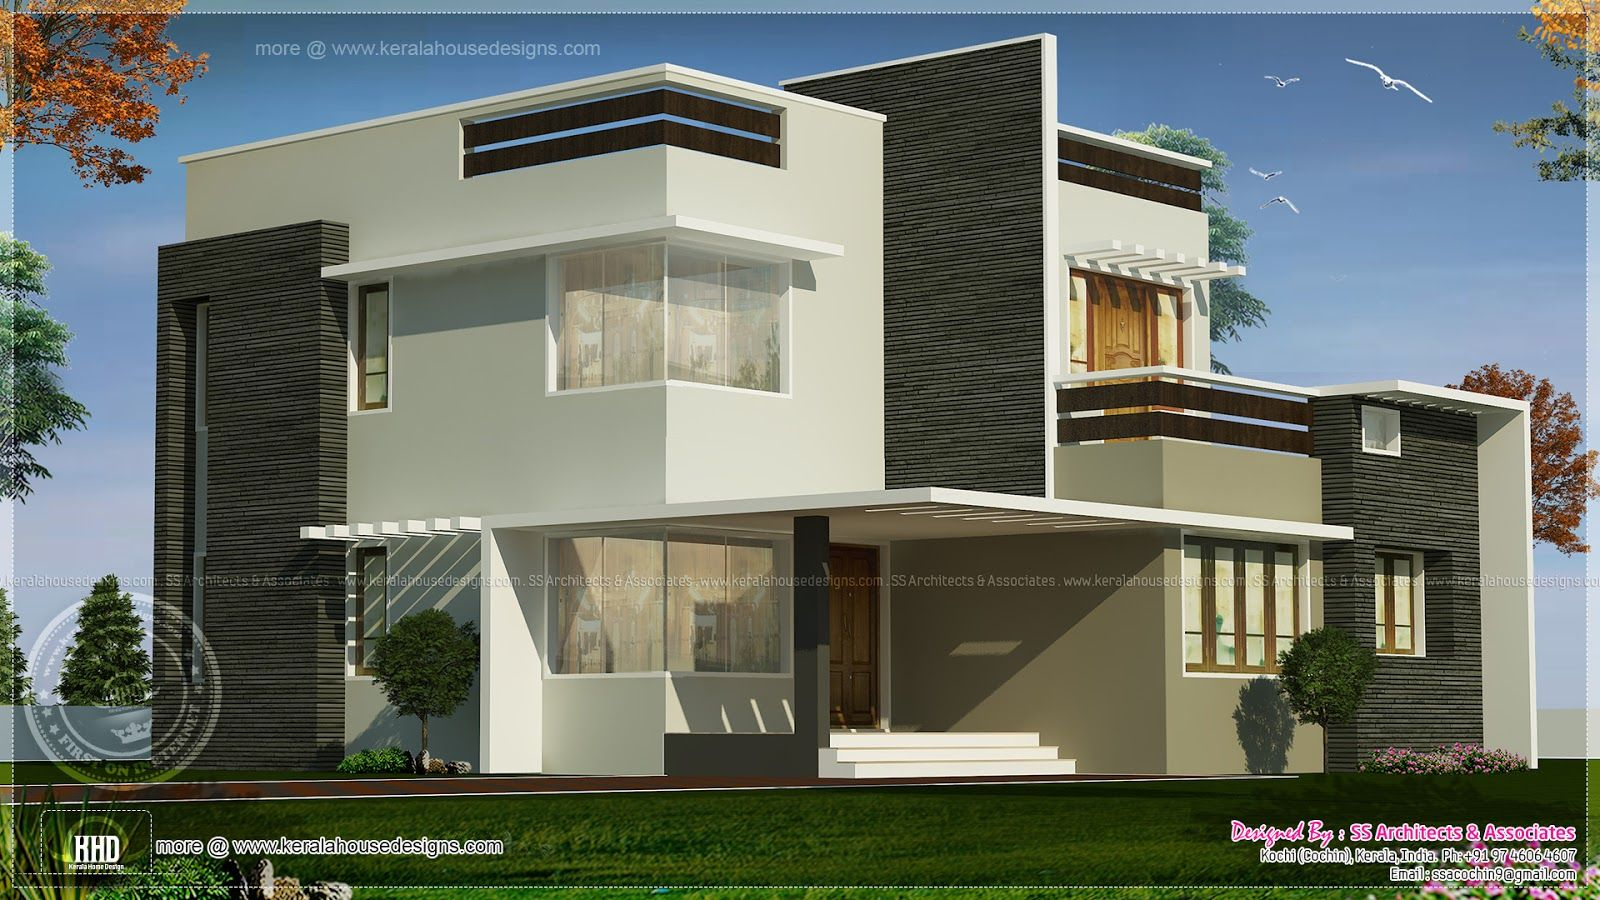 Square Feet Box Type Exterior Home Kerala Home Design Floor Square Feet  Contemporary Home Exterior House Design Plans Square Feet Box Type Exterior  Home ...